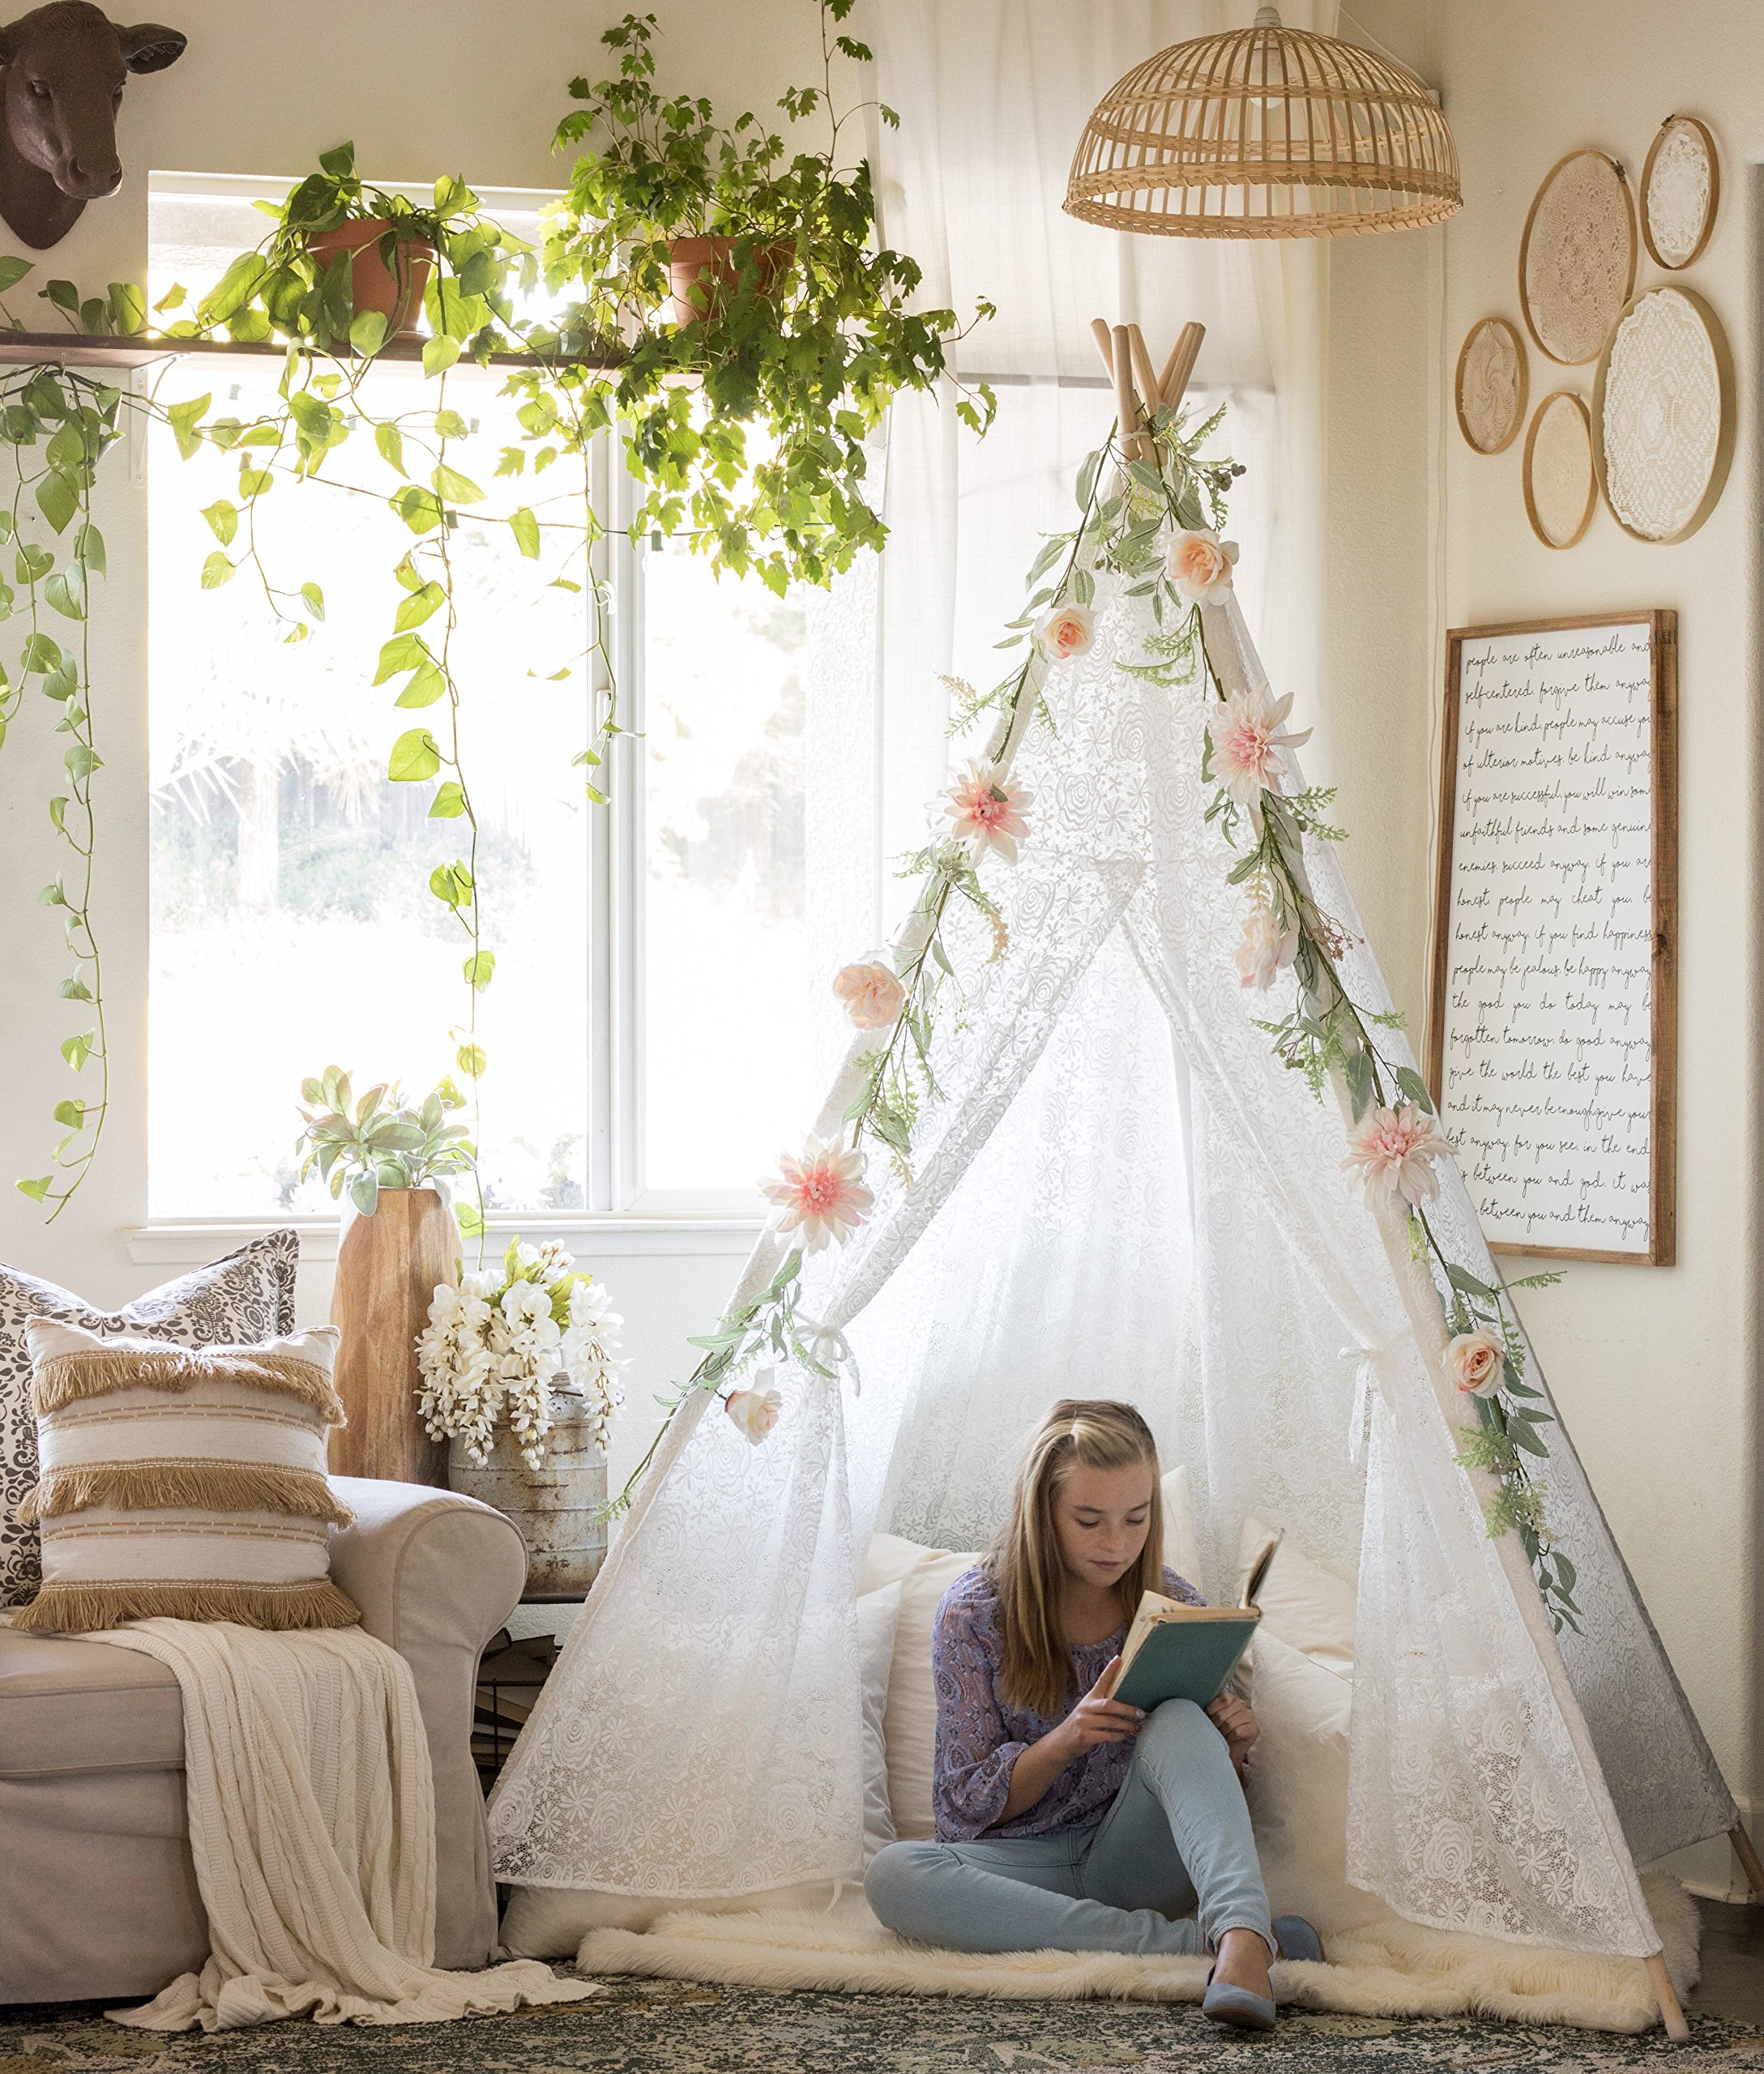 Tiny Land Huge Teepee Luxury Lace Tent for Wedding, Party, Photo Prop (7.5 Feet Tall) 5-Poles Lace Canopy for Indoor & Outdoor Use by Tiny Land